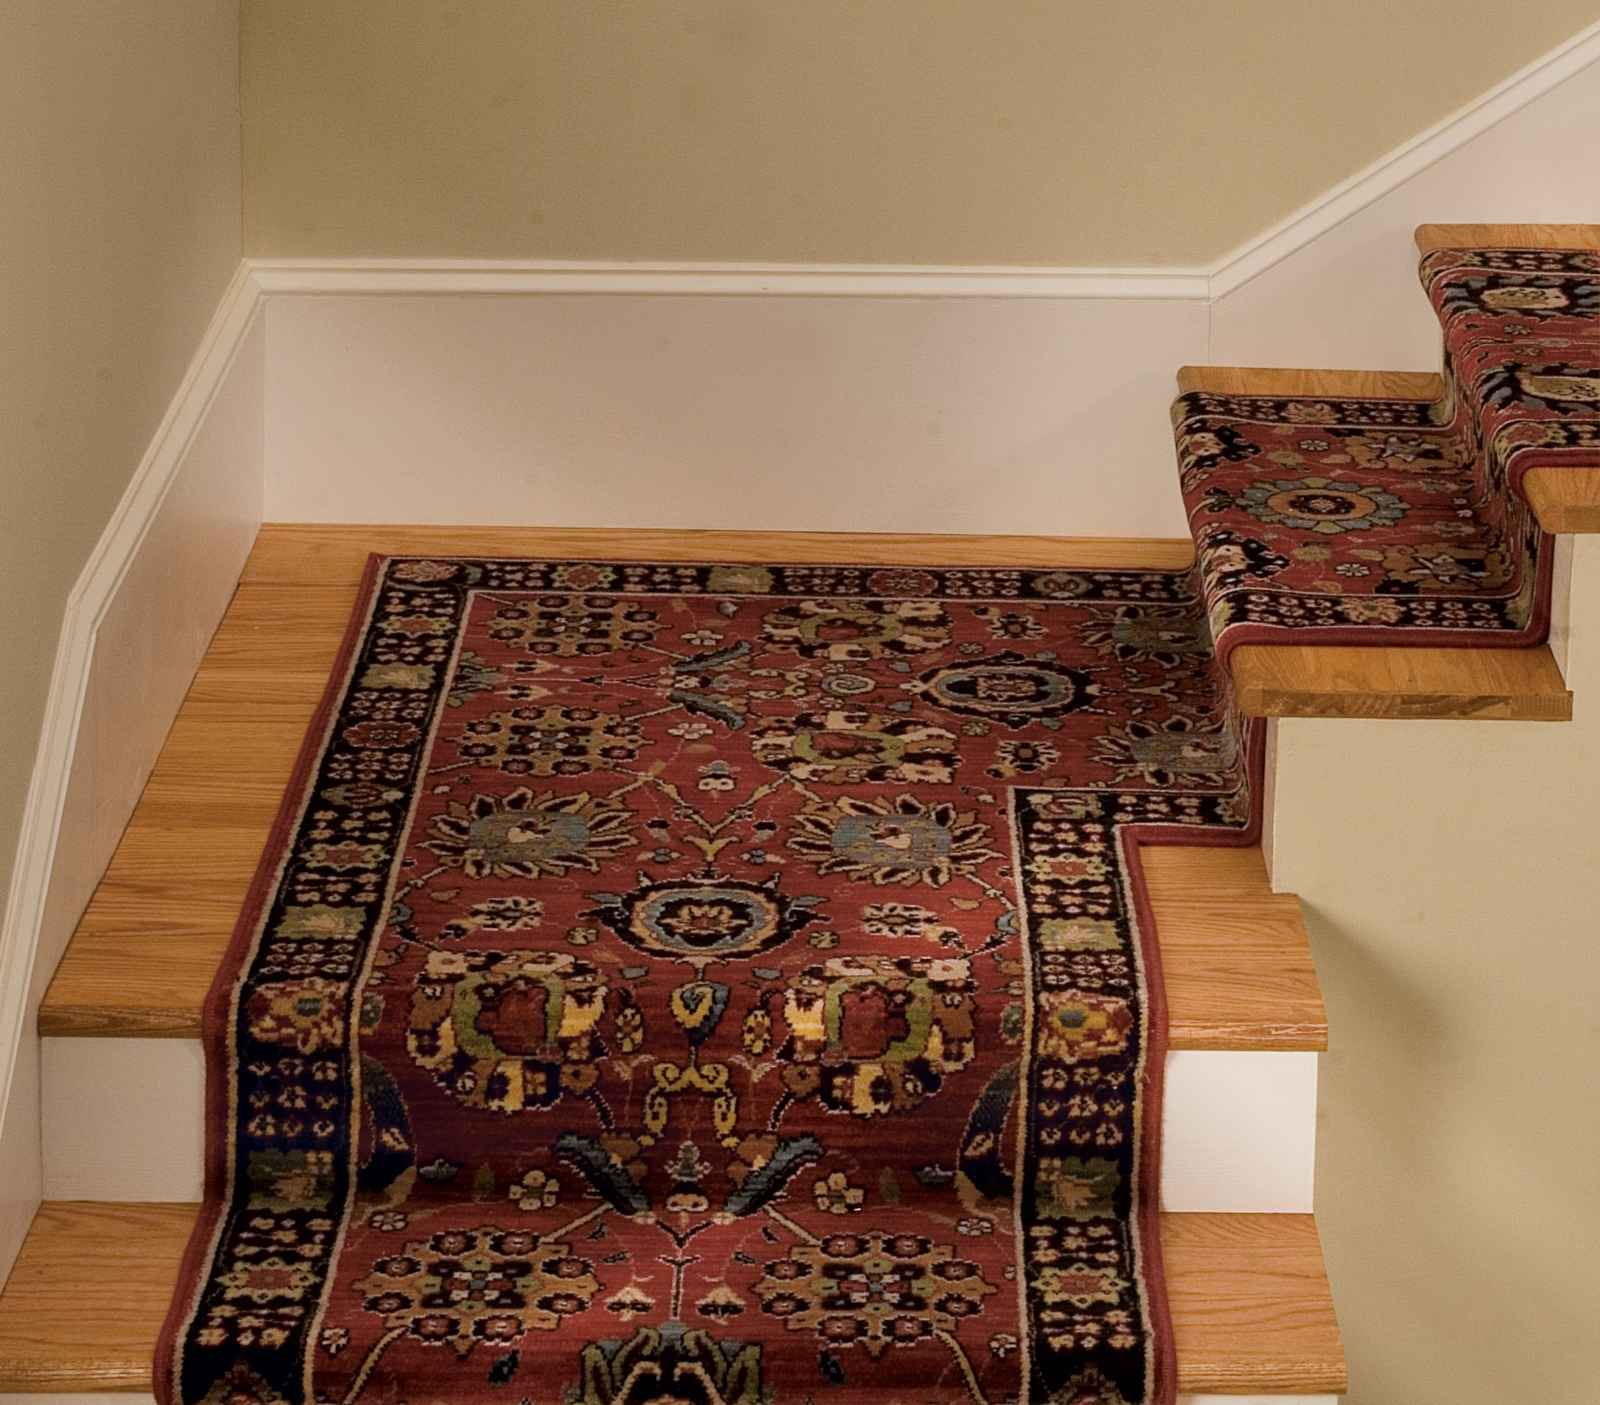 Carpet stair runner for home new home pinterest for Cheap wall to wall carpet